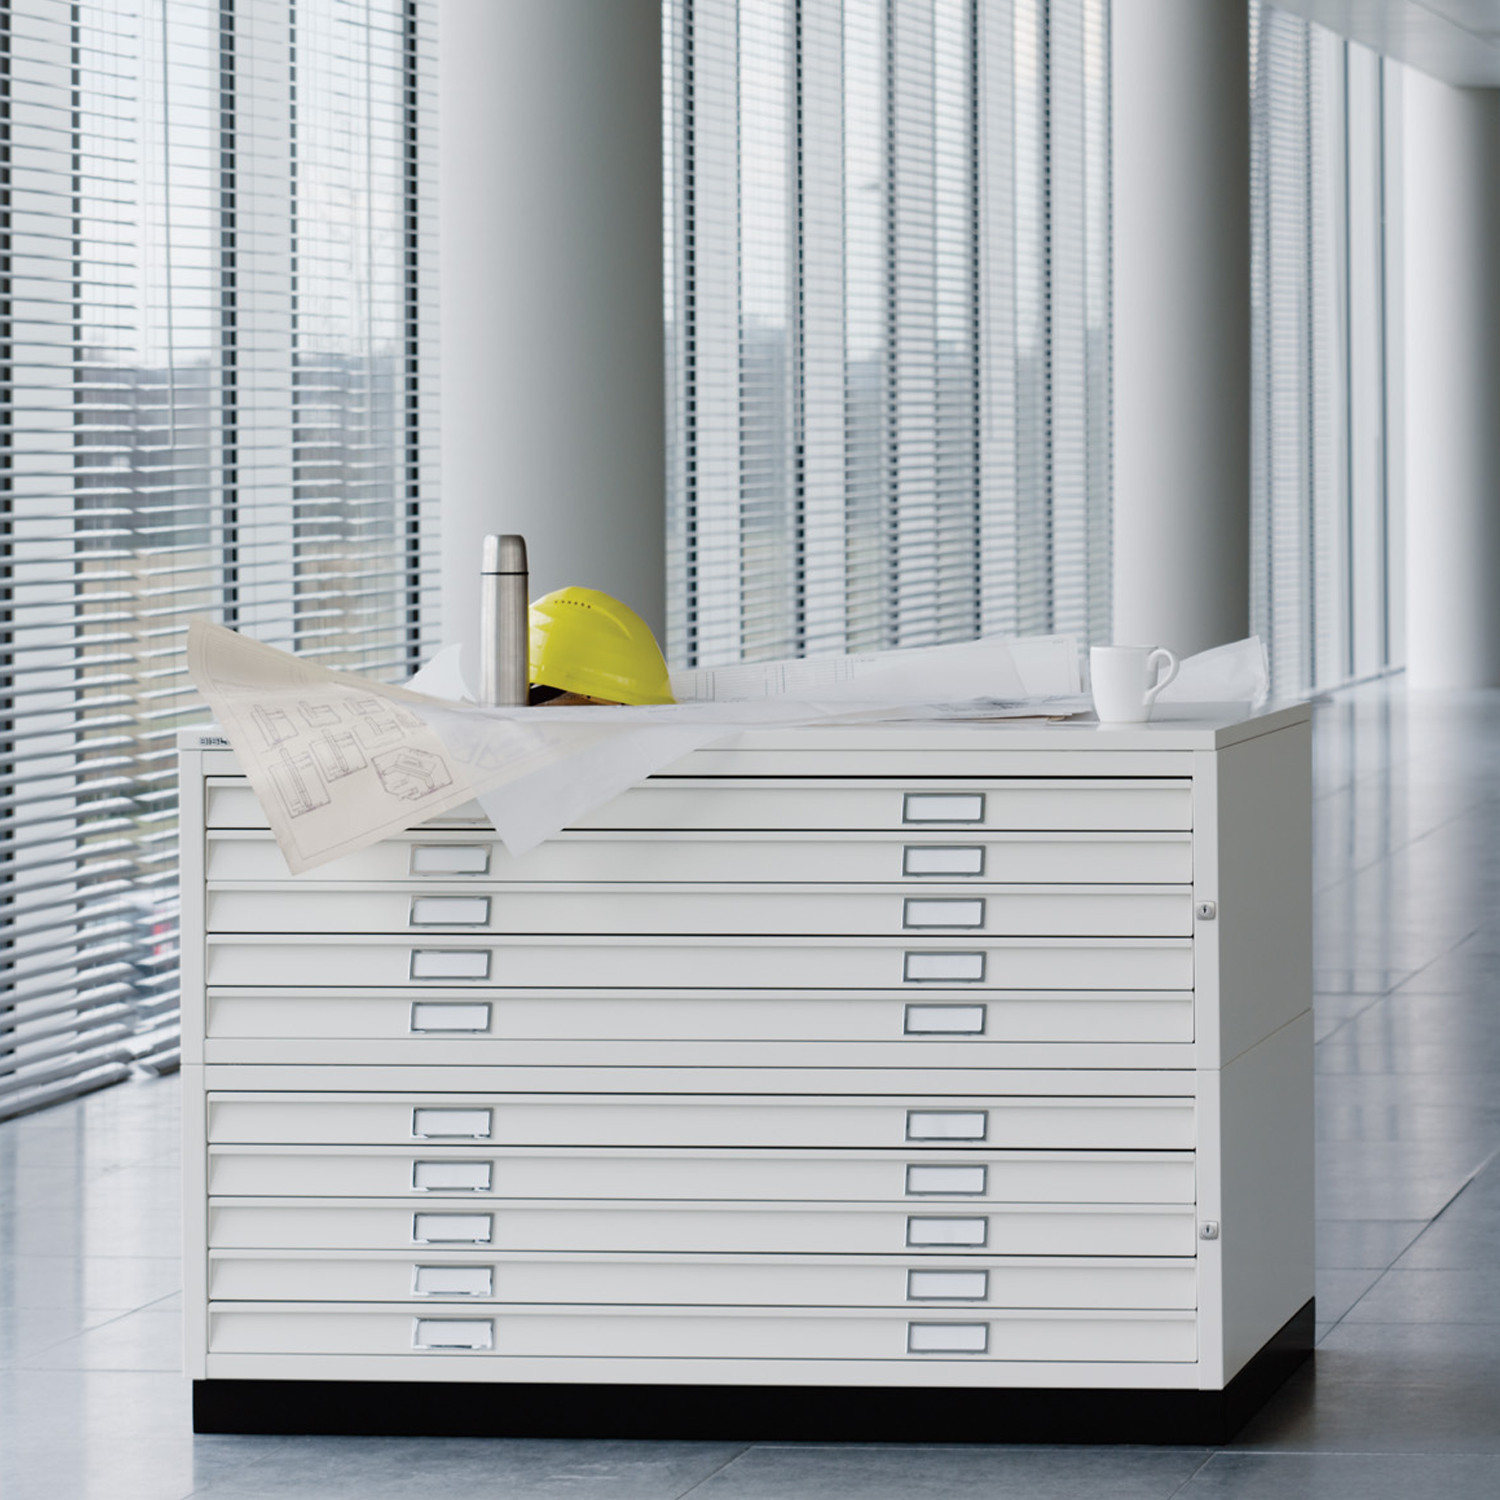 Plan File A0 & A1 Cabinets from Bisley